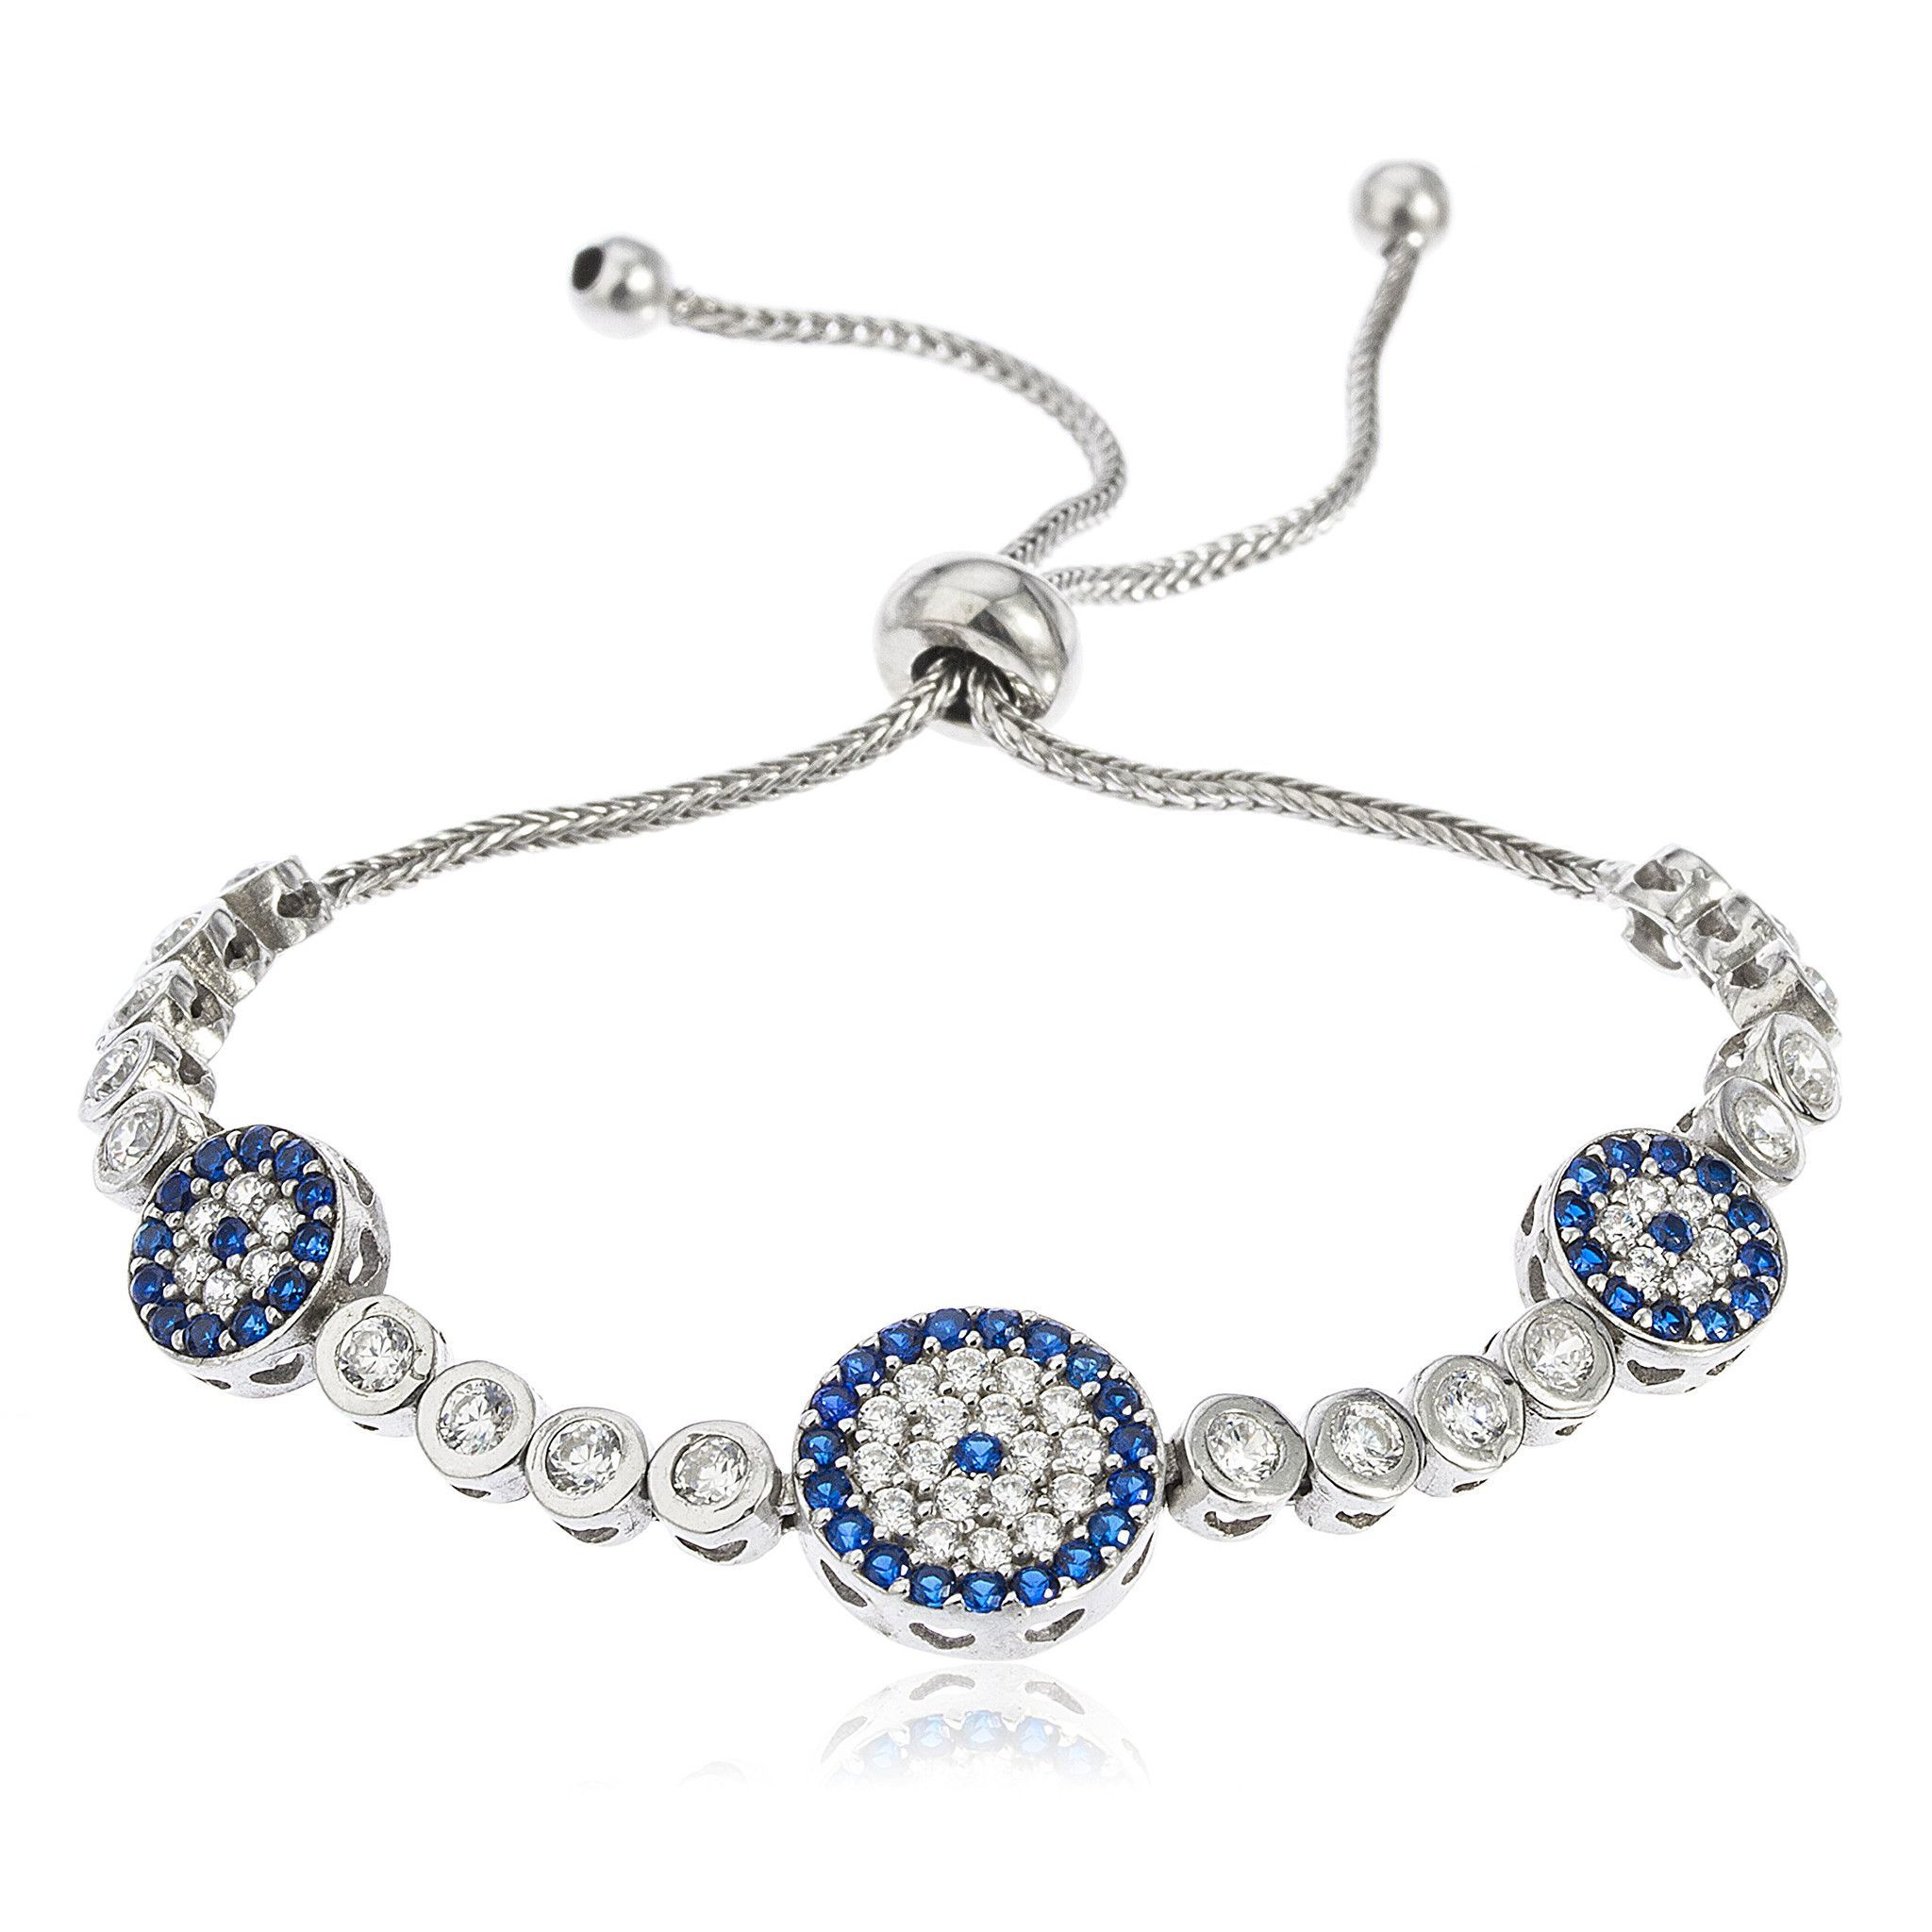 8899dc32a60132 Real 925 Sterling Silver Triple Circle Eye Bezel Cubic Zirconia Adjustable  4-8 Inch Bracelet